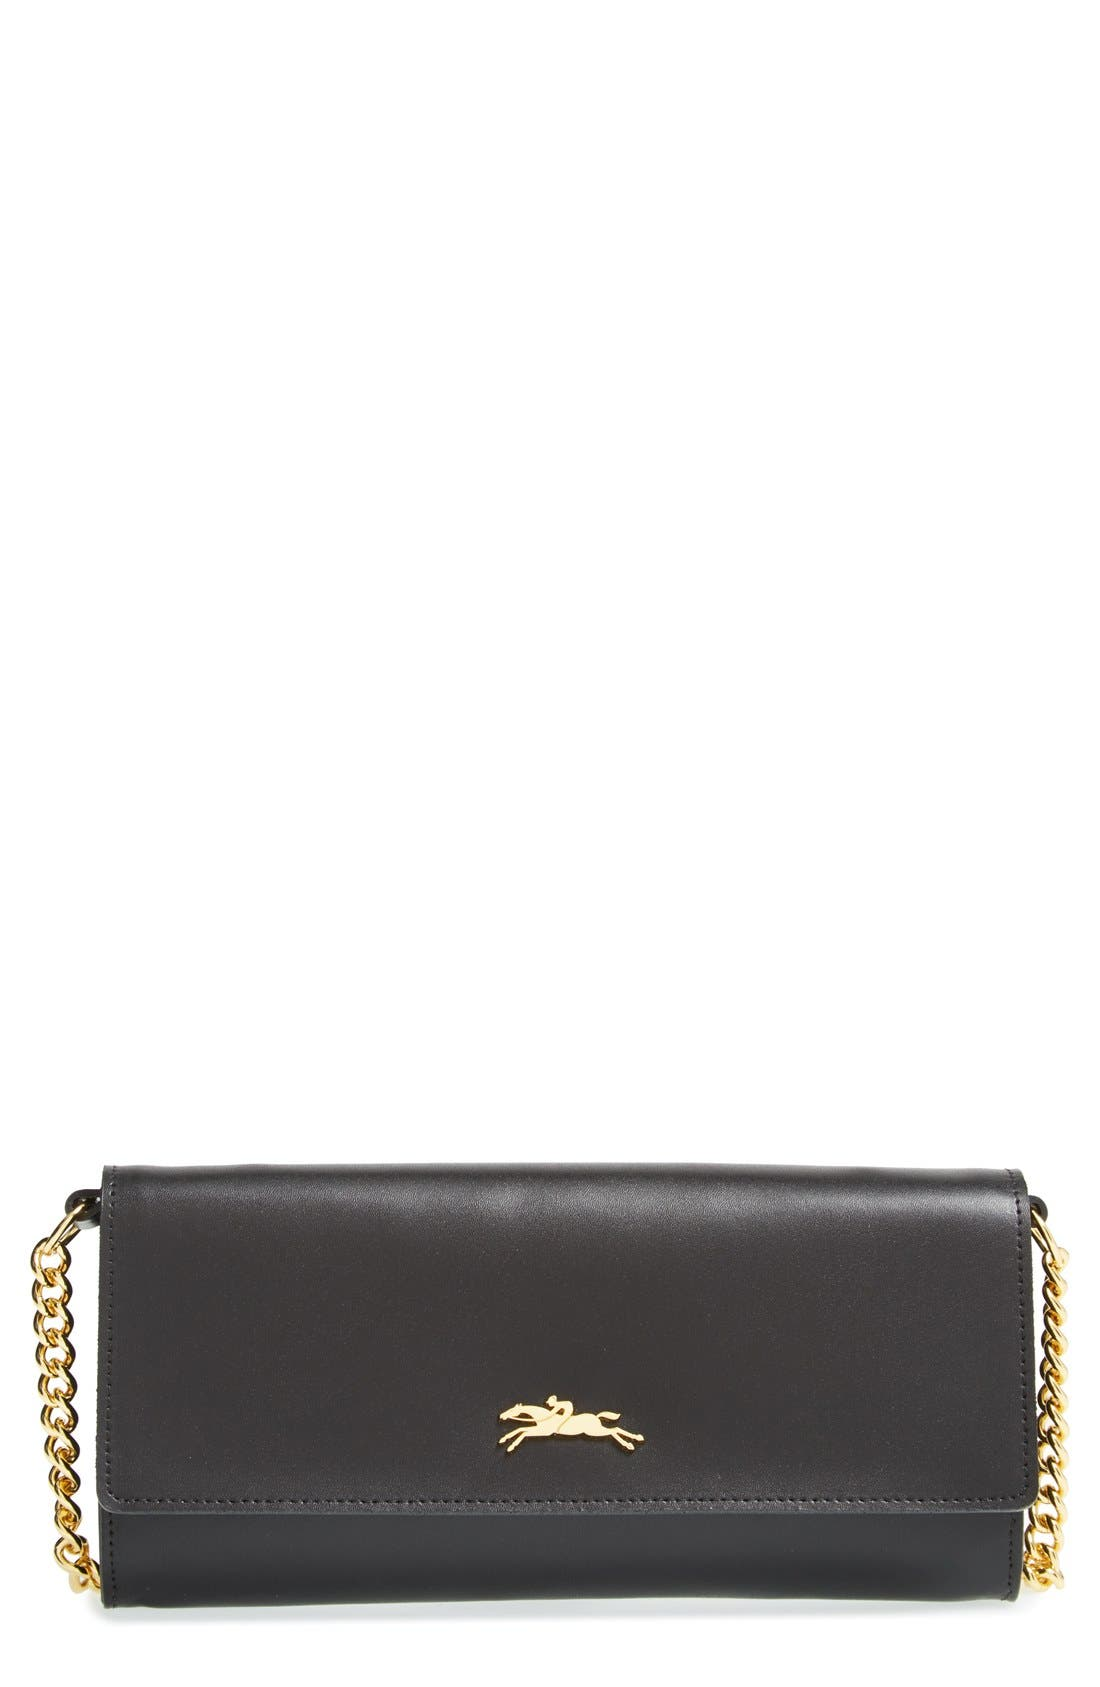 Main Image - Longchamp 'Honore' Wallet on A Chain